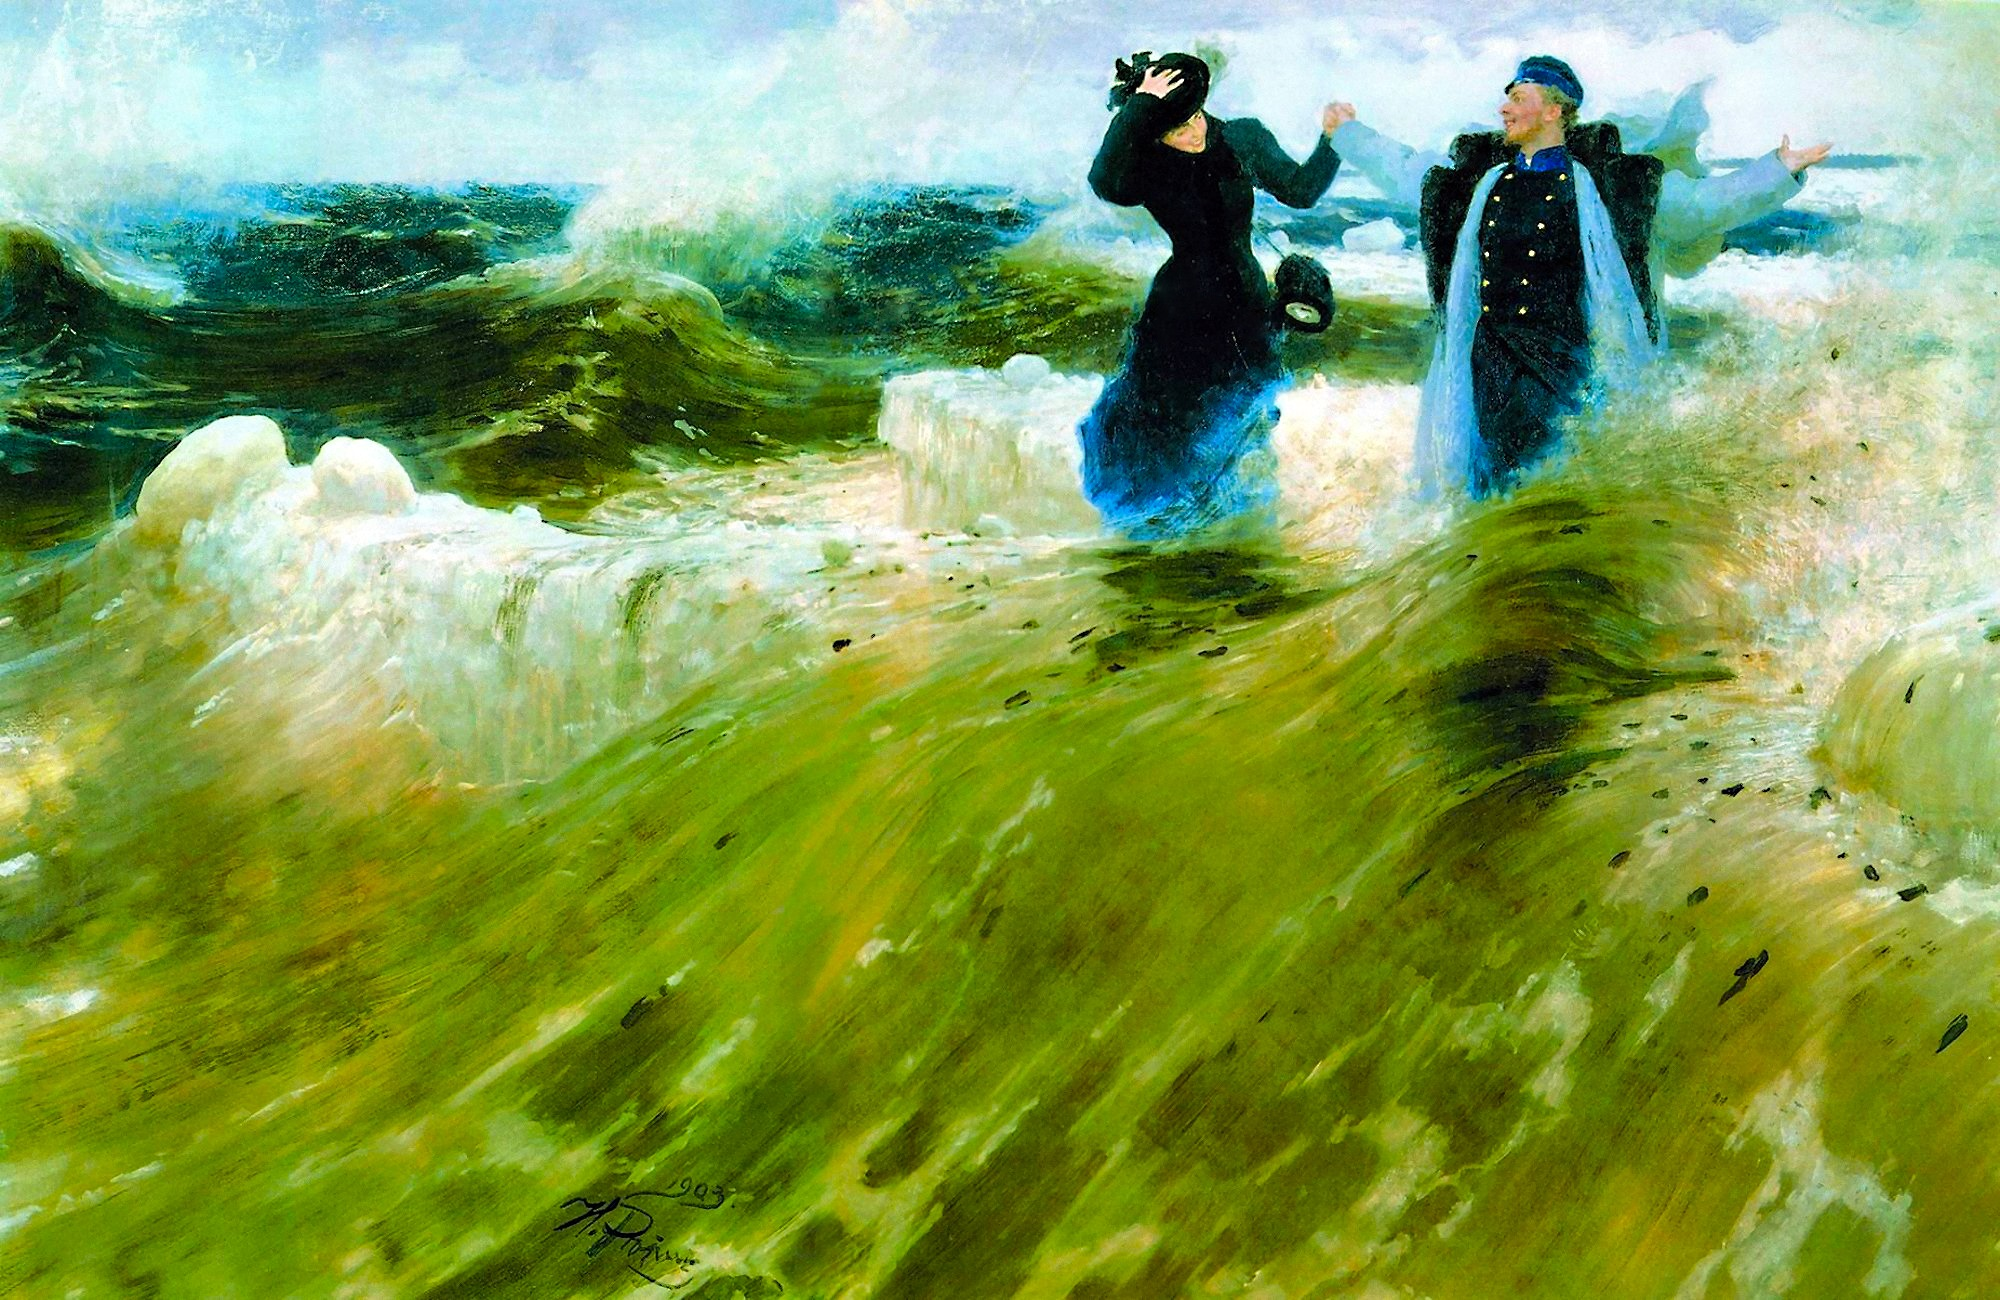 00 Ilya Repin. What Freedom! 1903